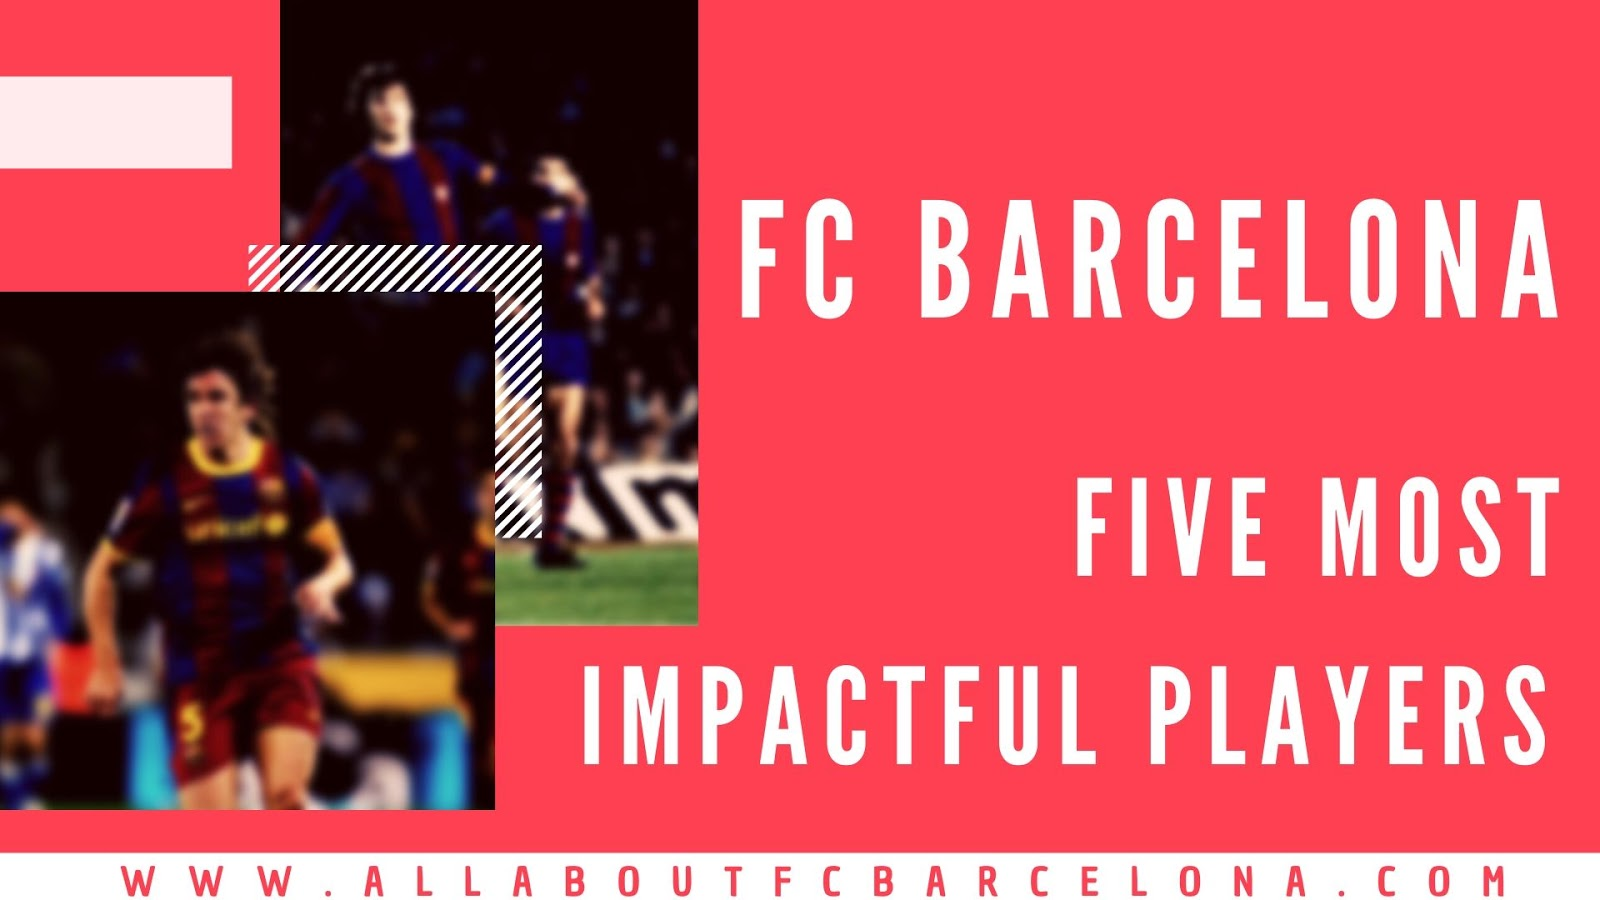 Five Most Impactful Players at FC Barcelona